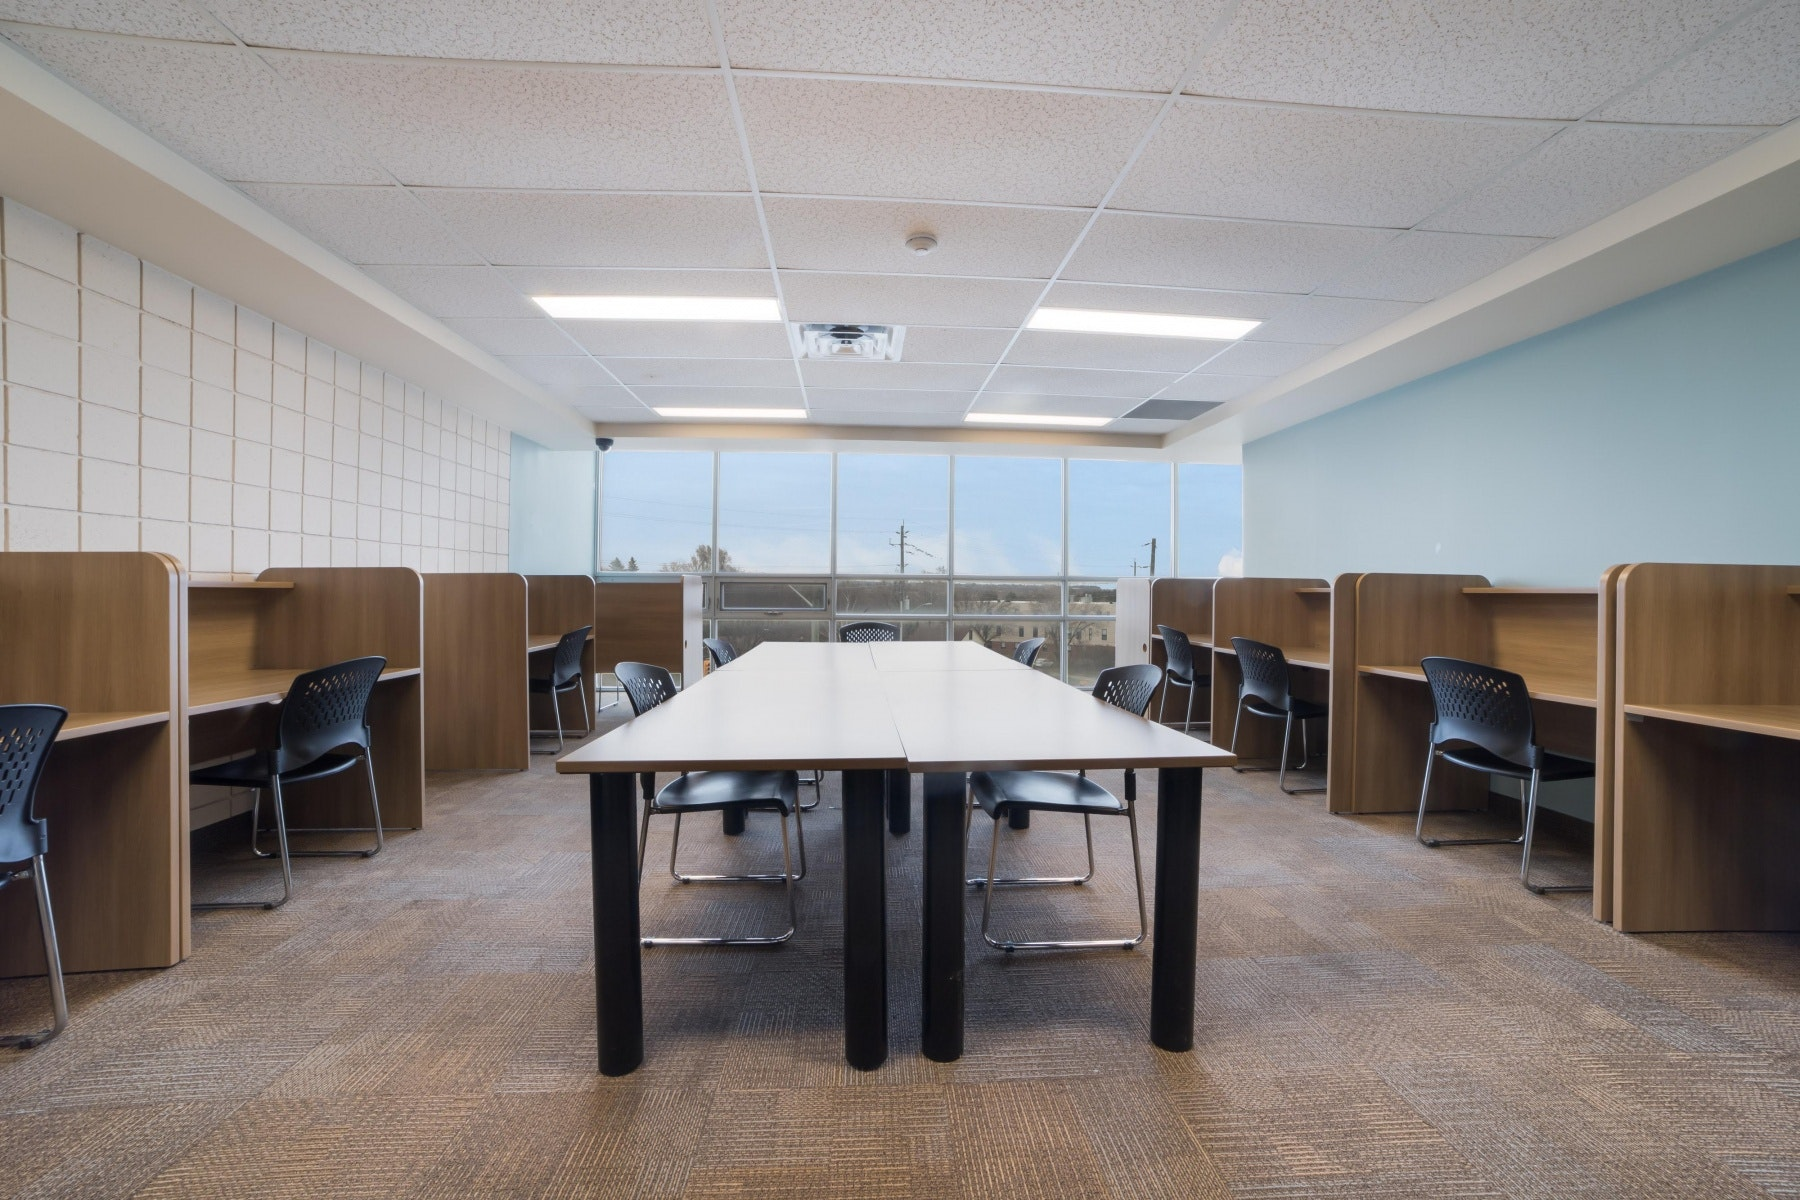 Study lounge with tables and chairs